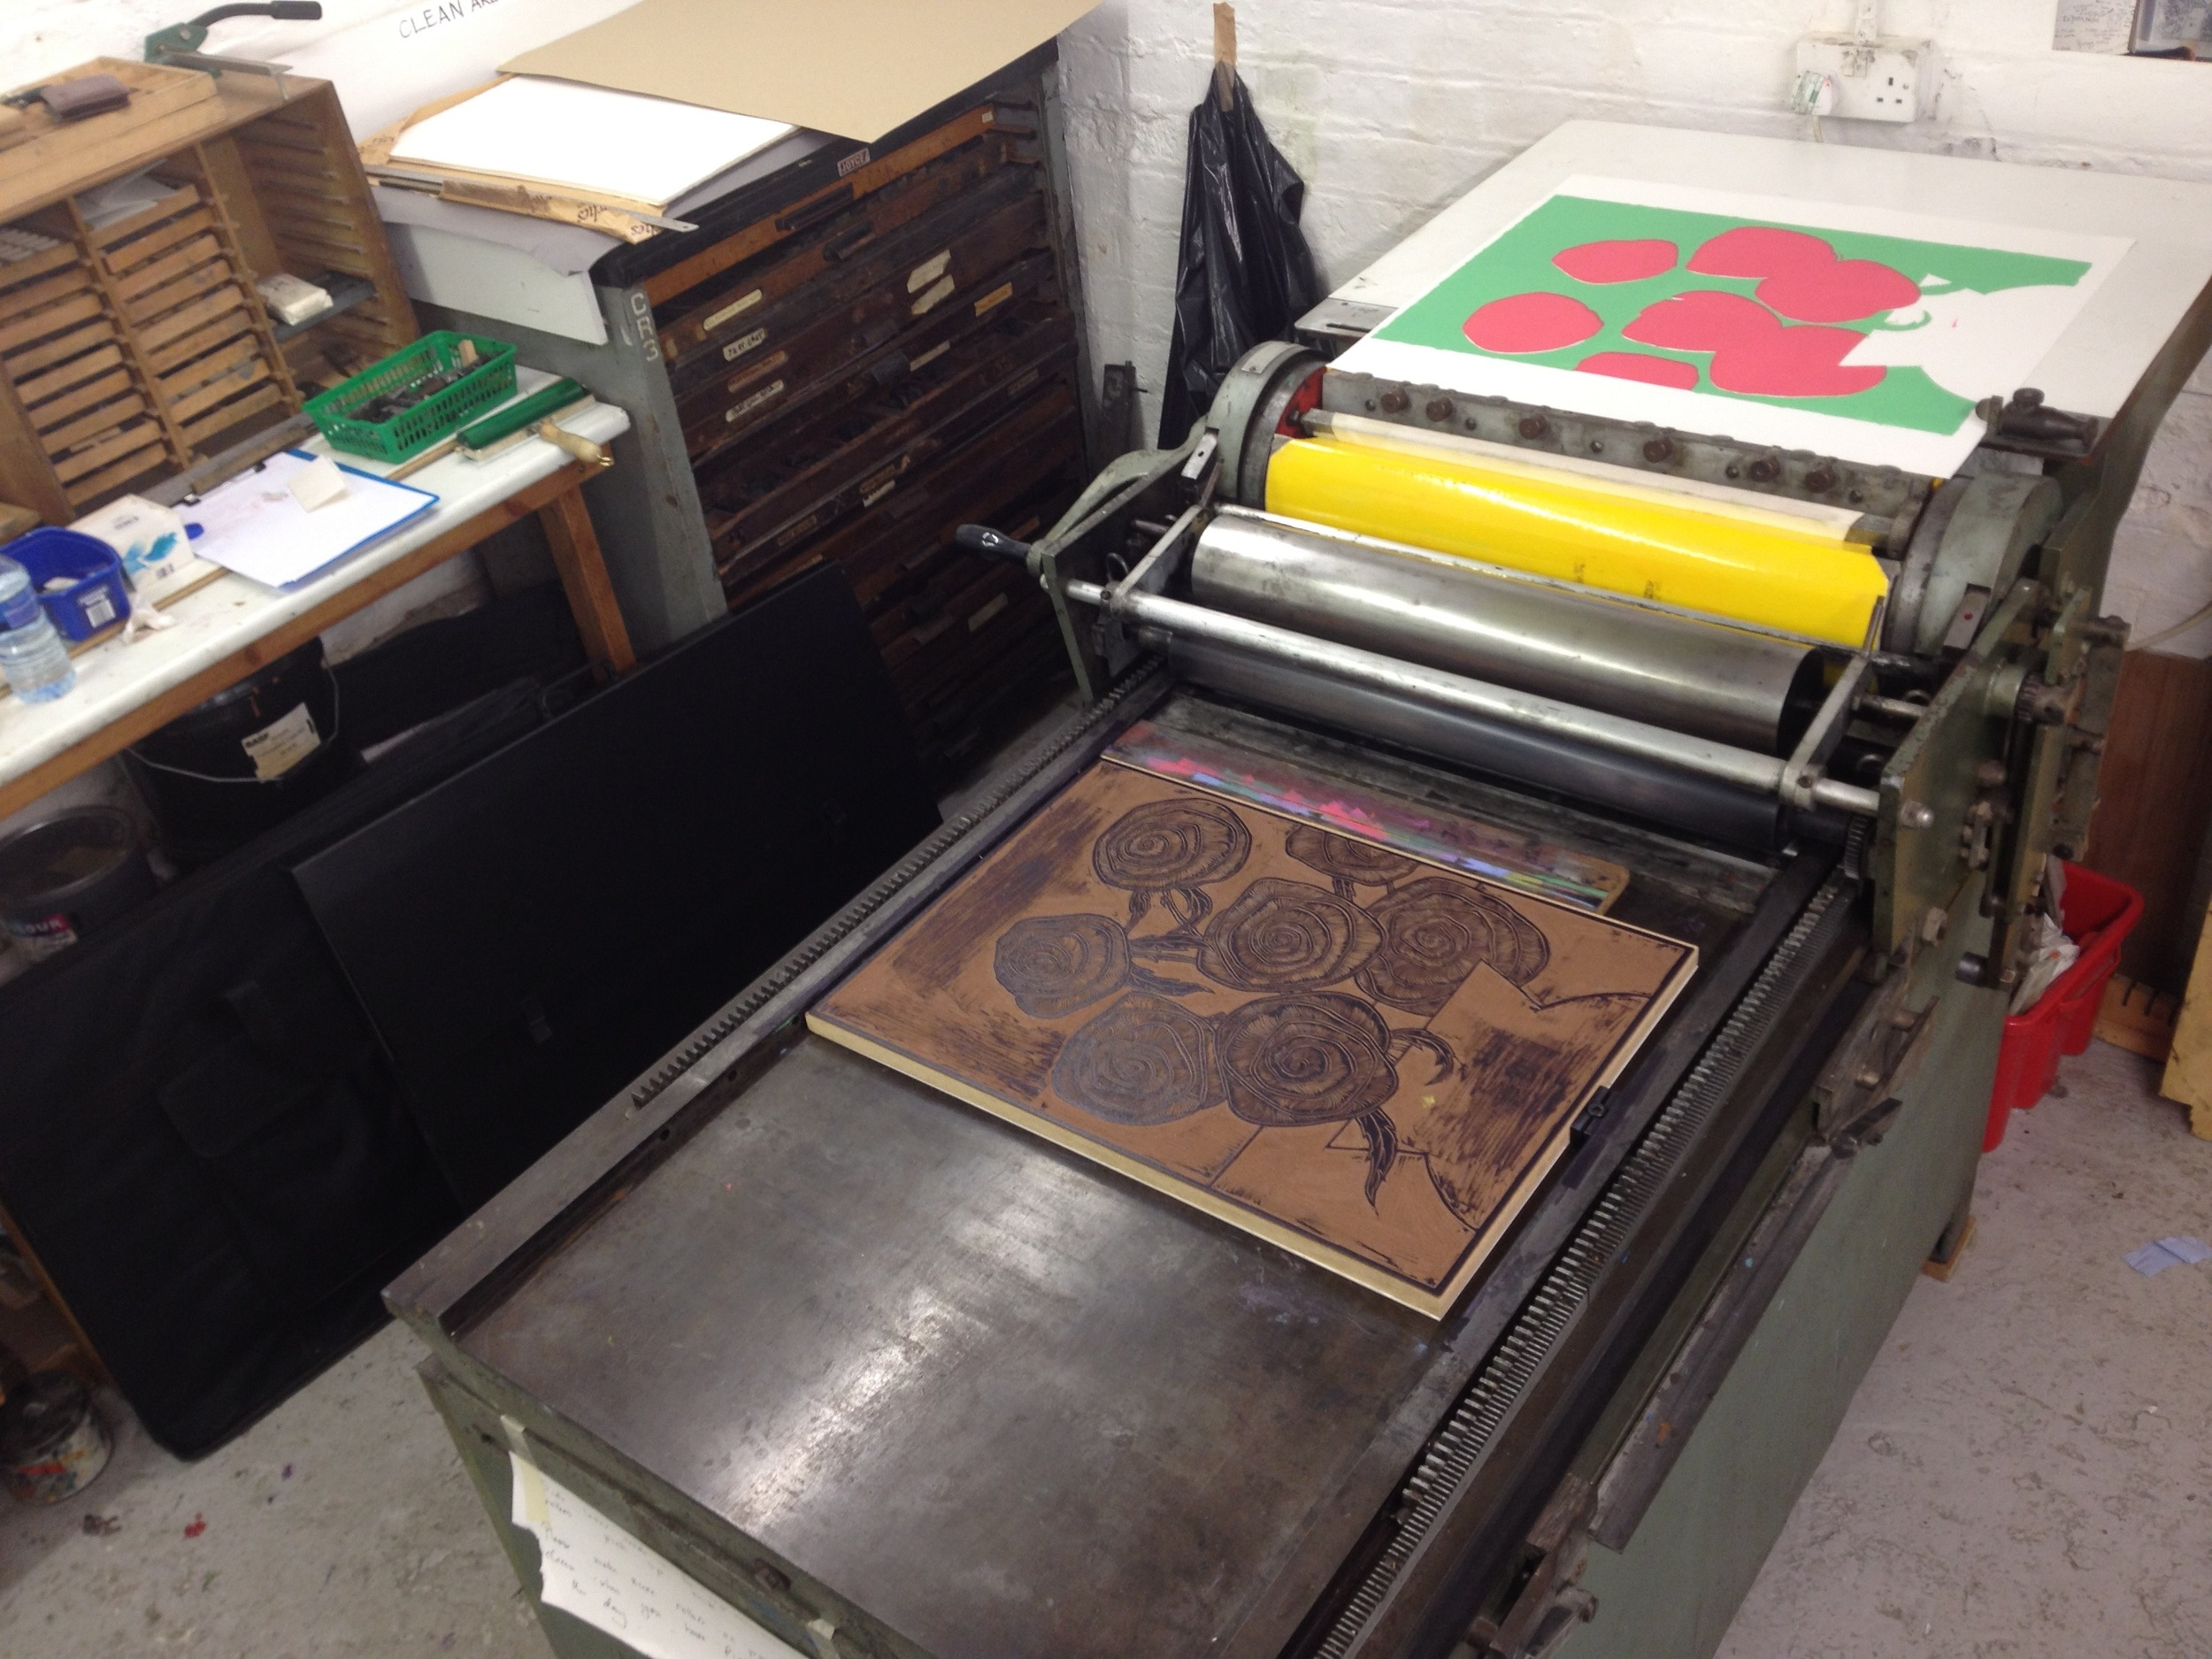 the third plate in the Letterpress and ready to strike